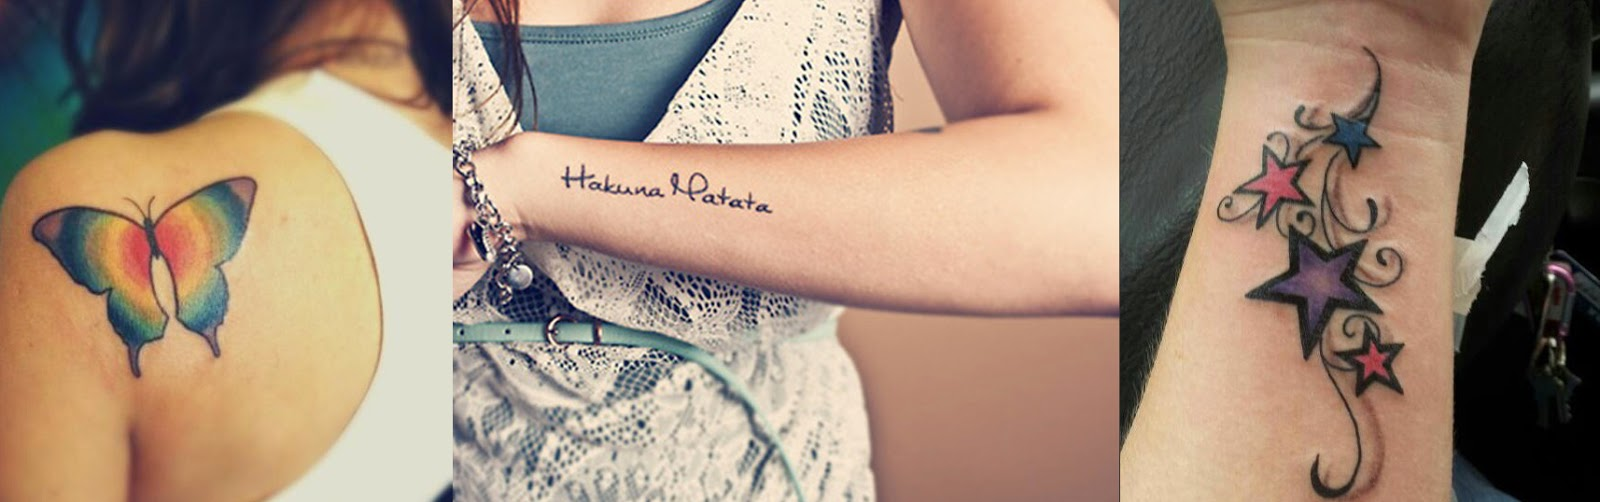 Most popular tattoo for girls on the wrist